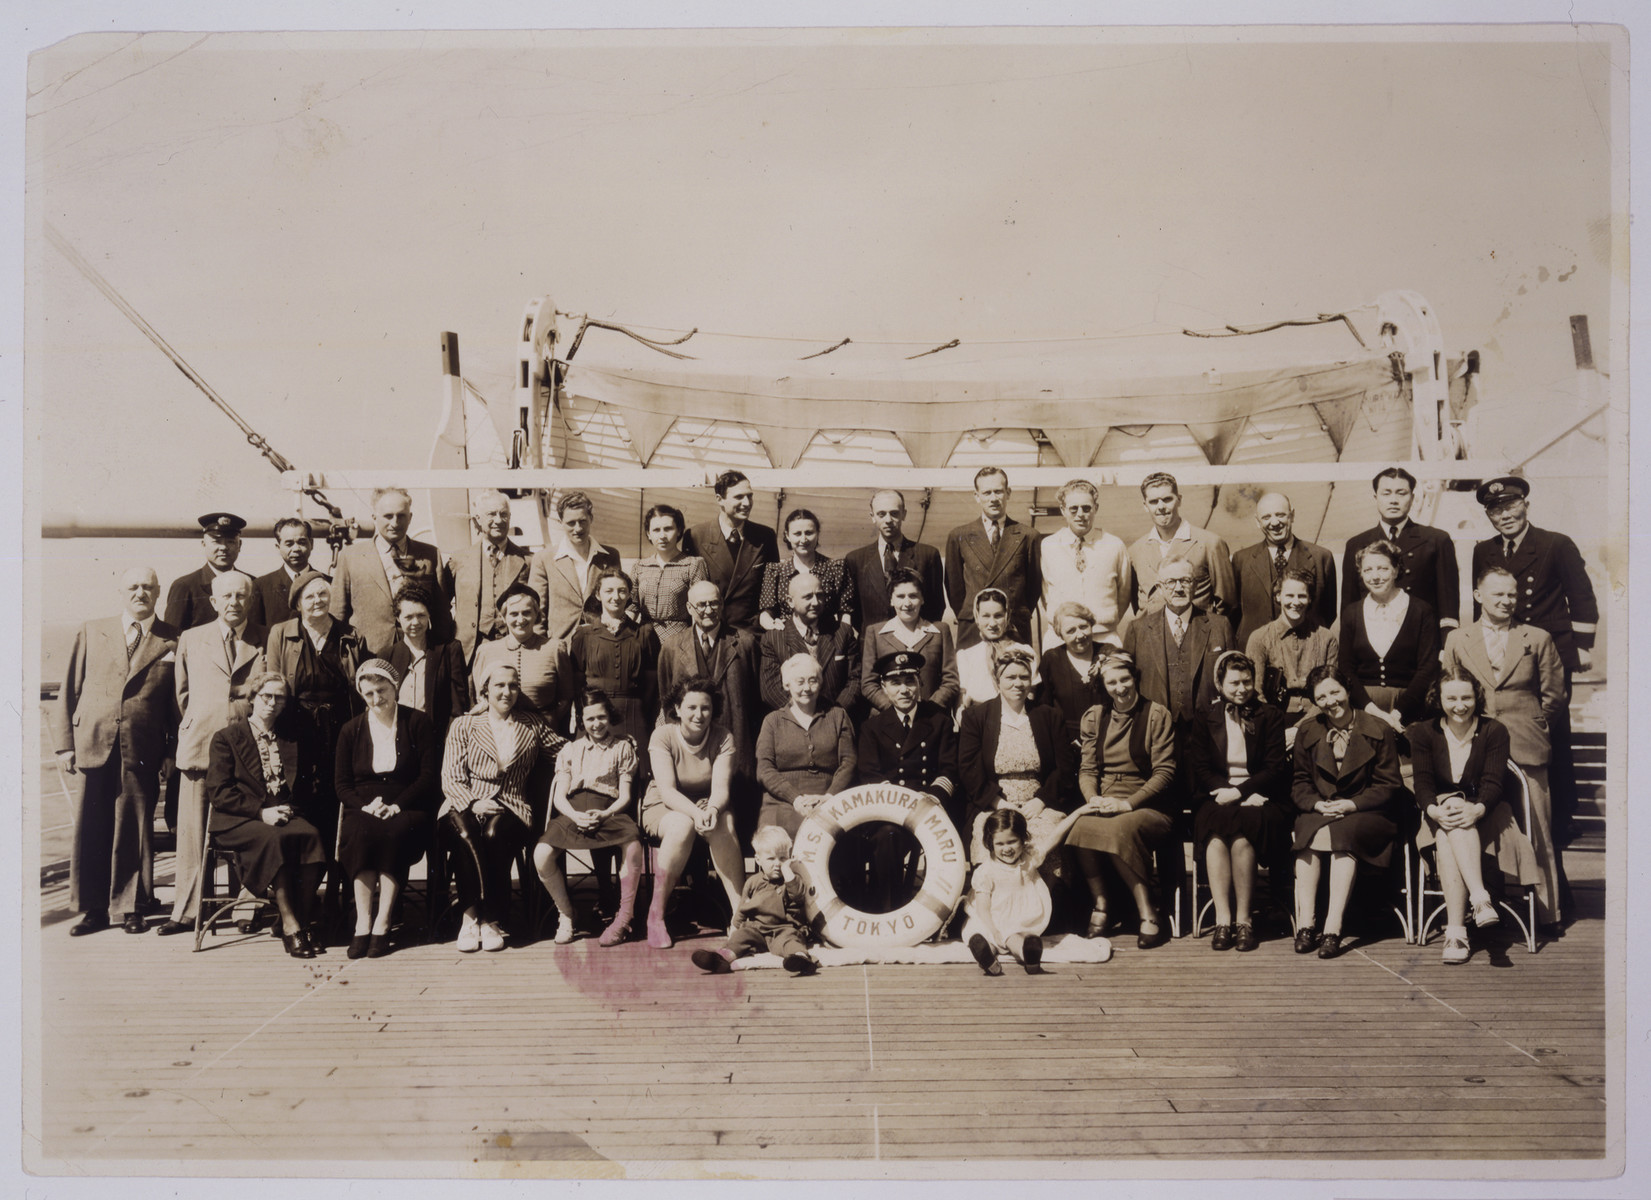 The passengers on the M. S. Kamakura Maru en route to the United States.